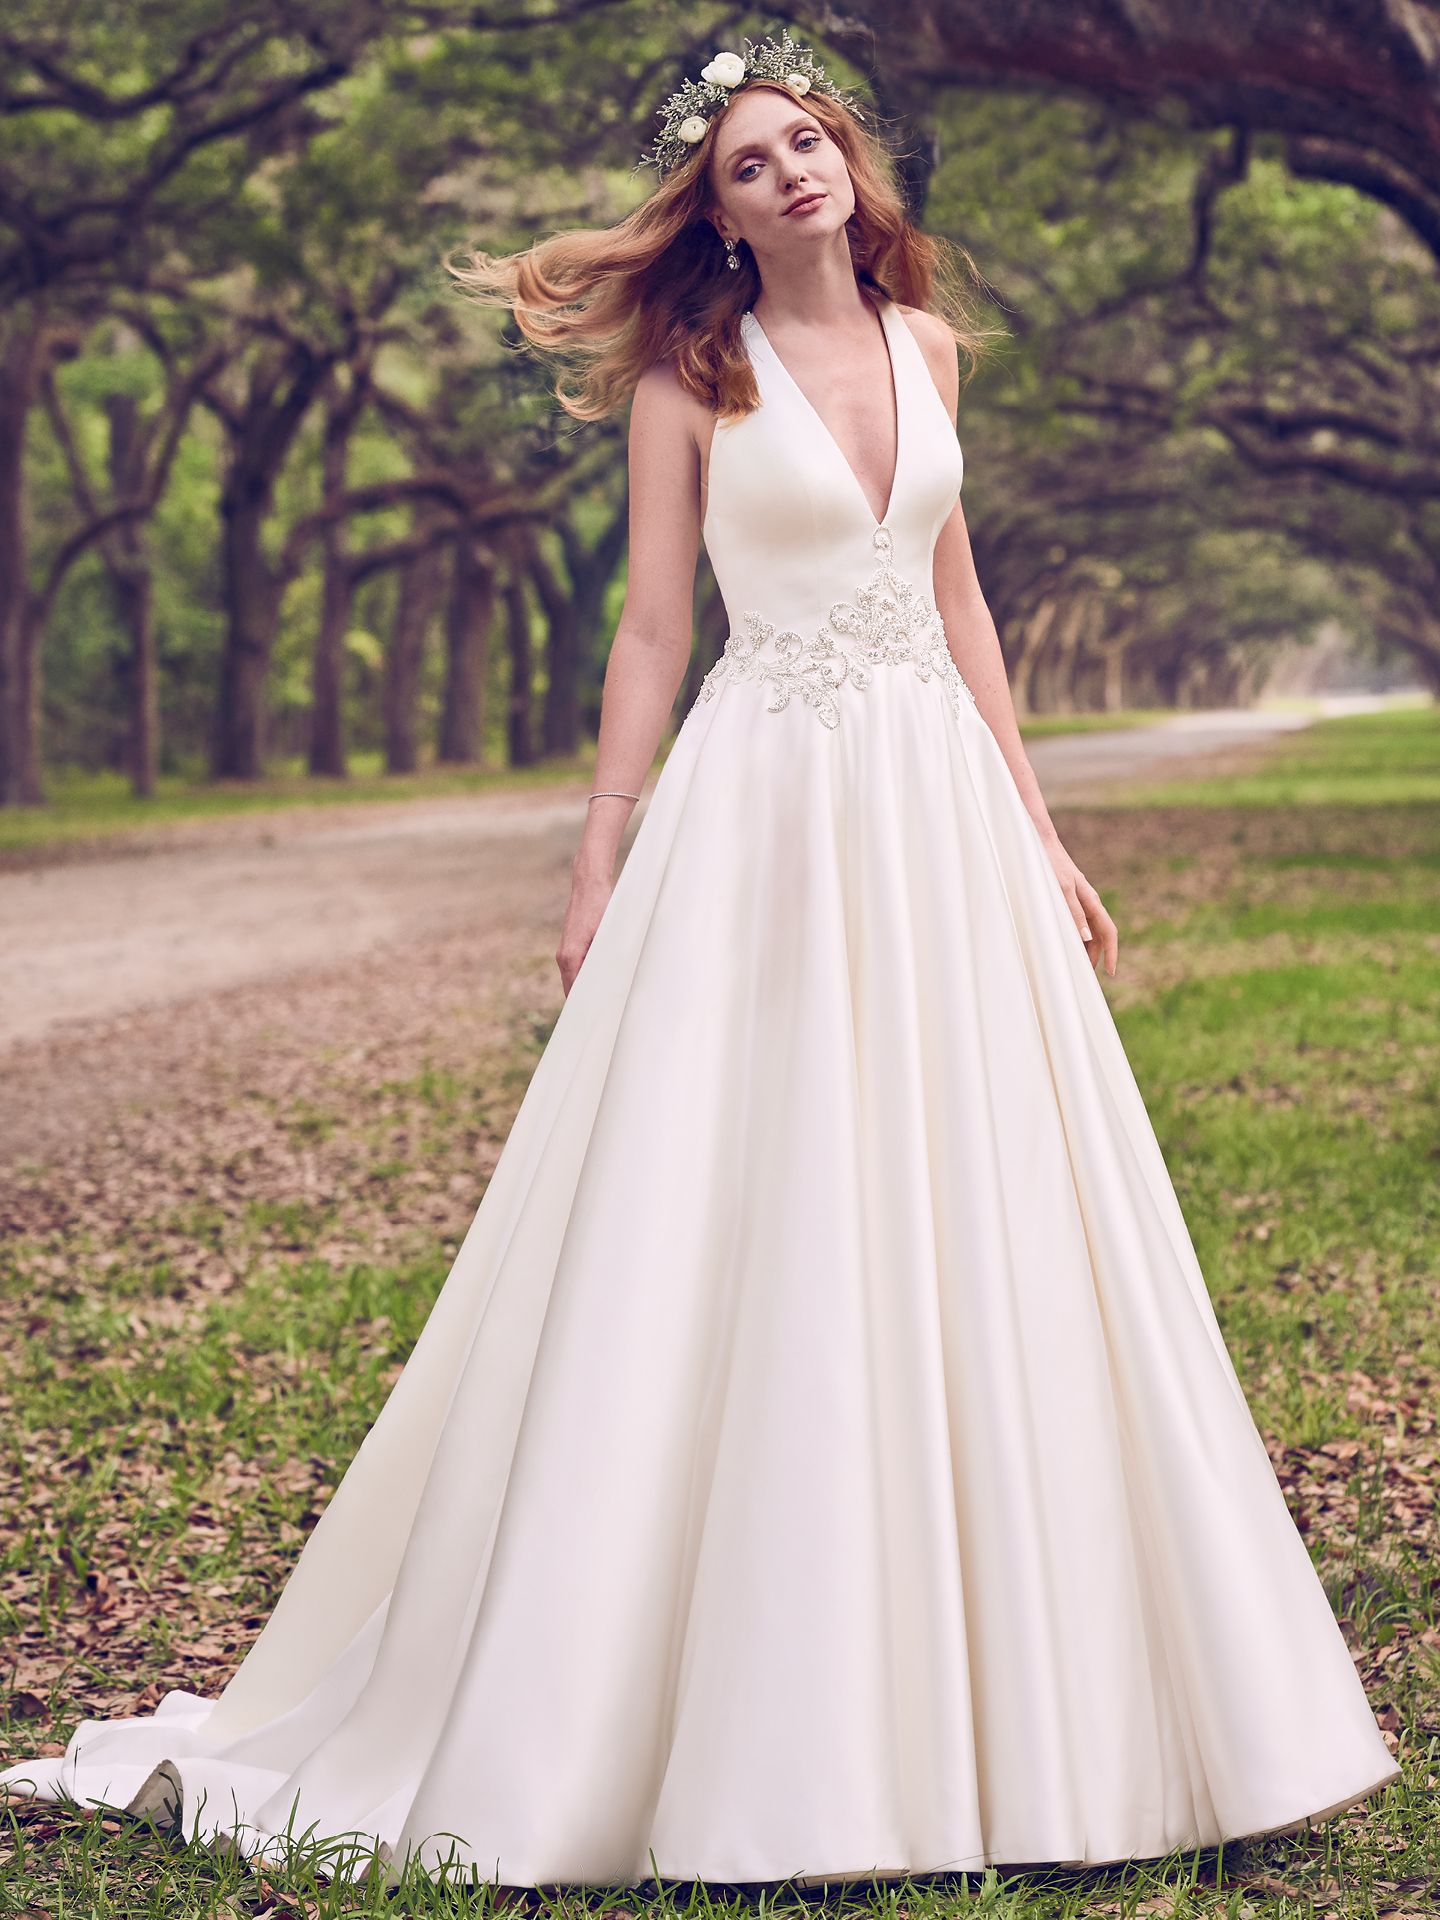 Satin wedding dress Corianne by Sottero & Midgley